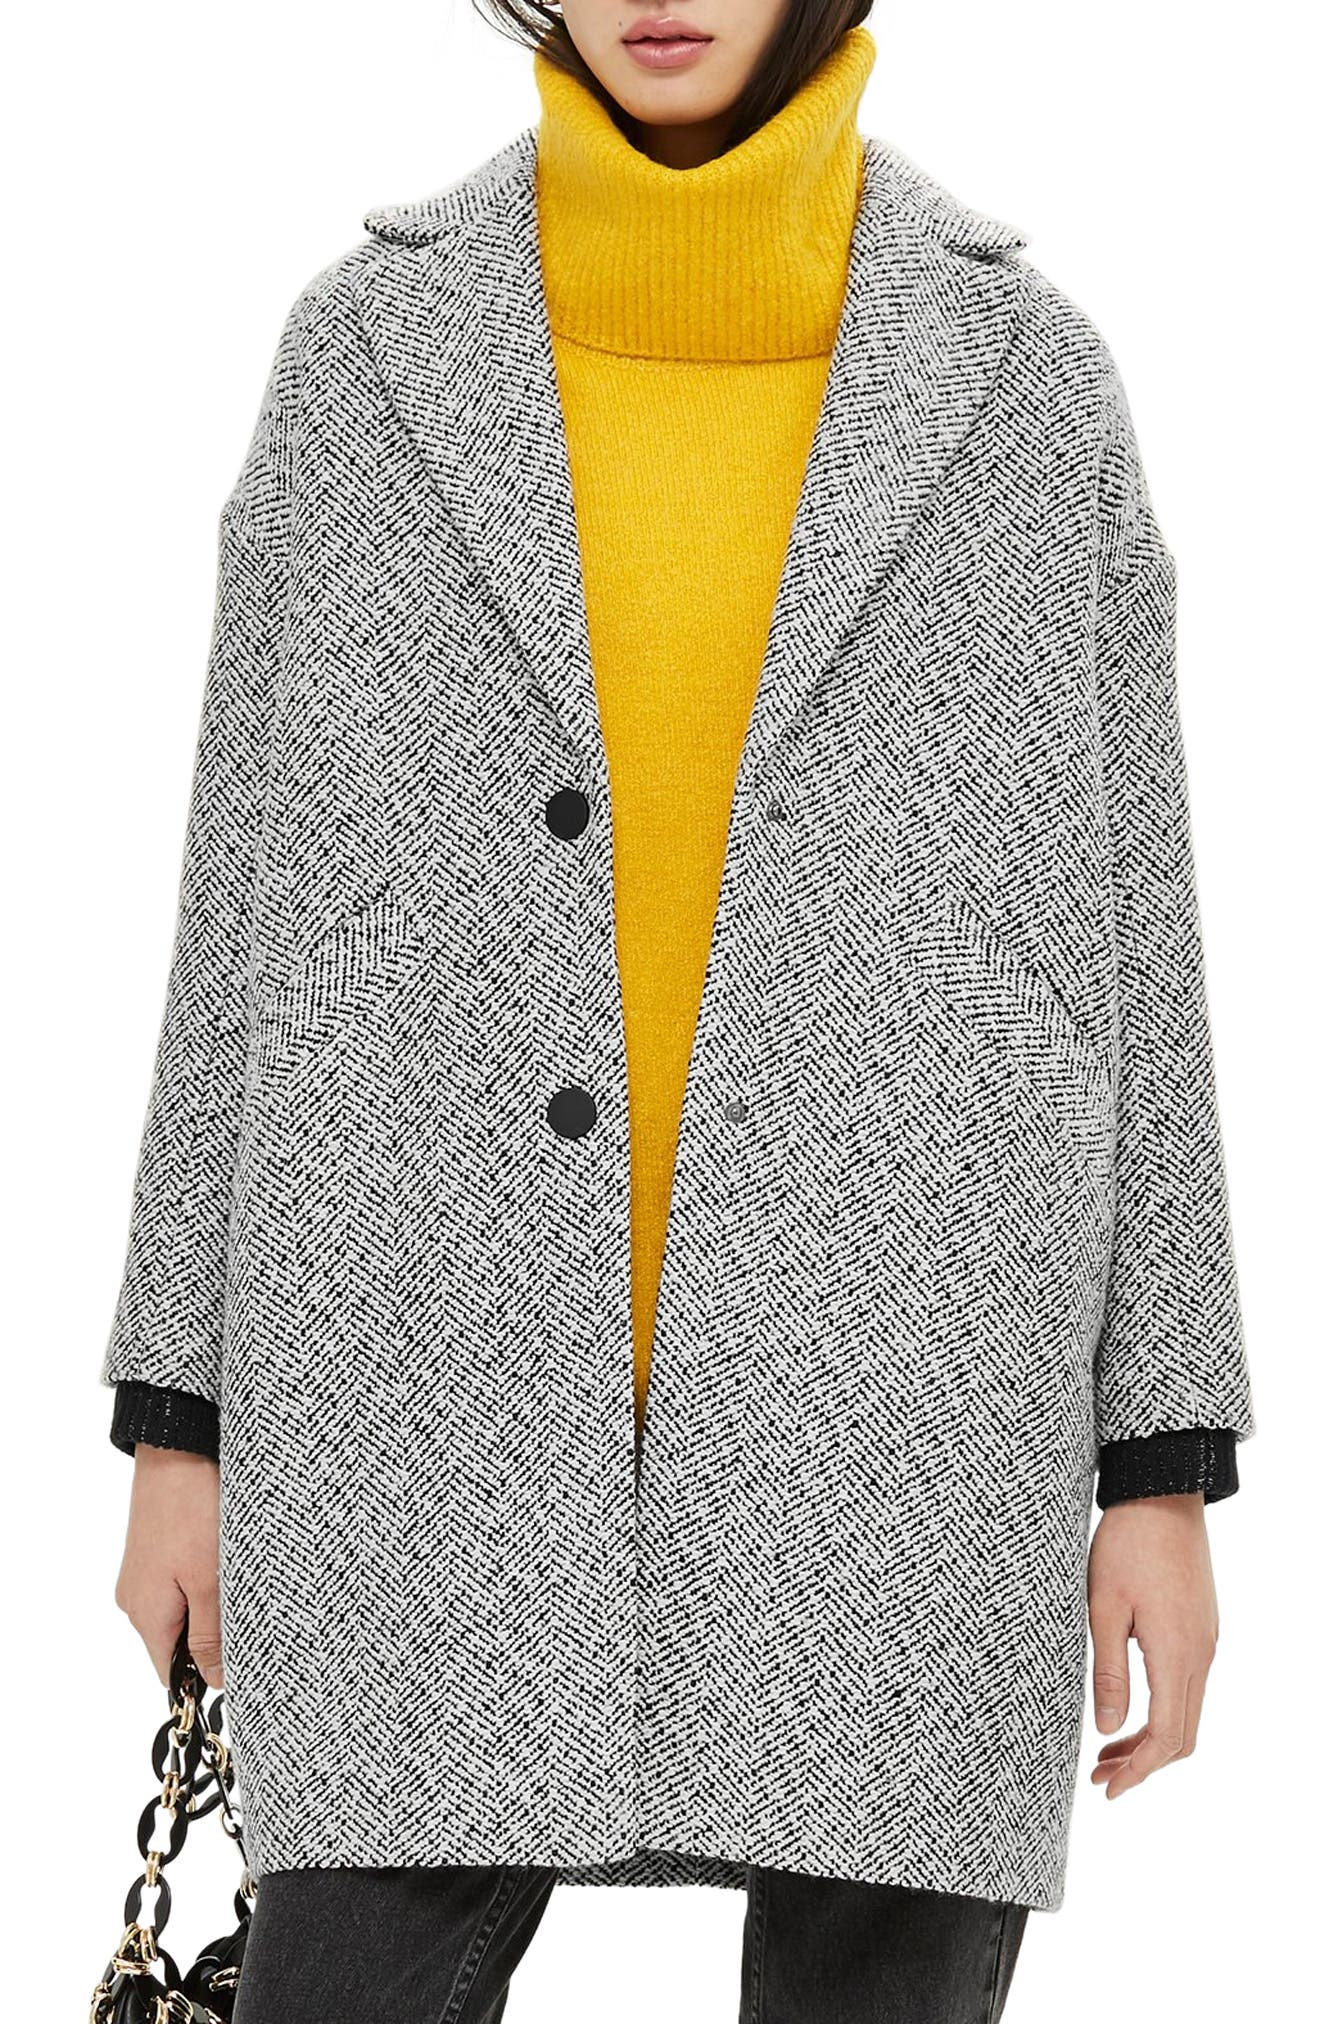 Herringbone Check Coat,                         Main,                         color, GREY MULTI